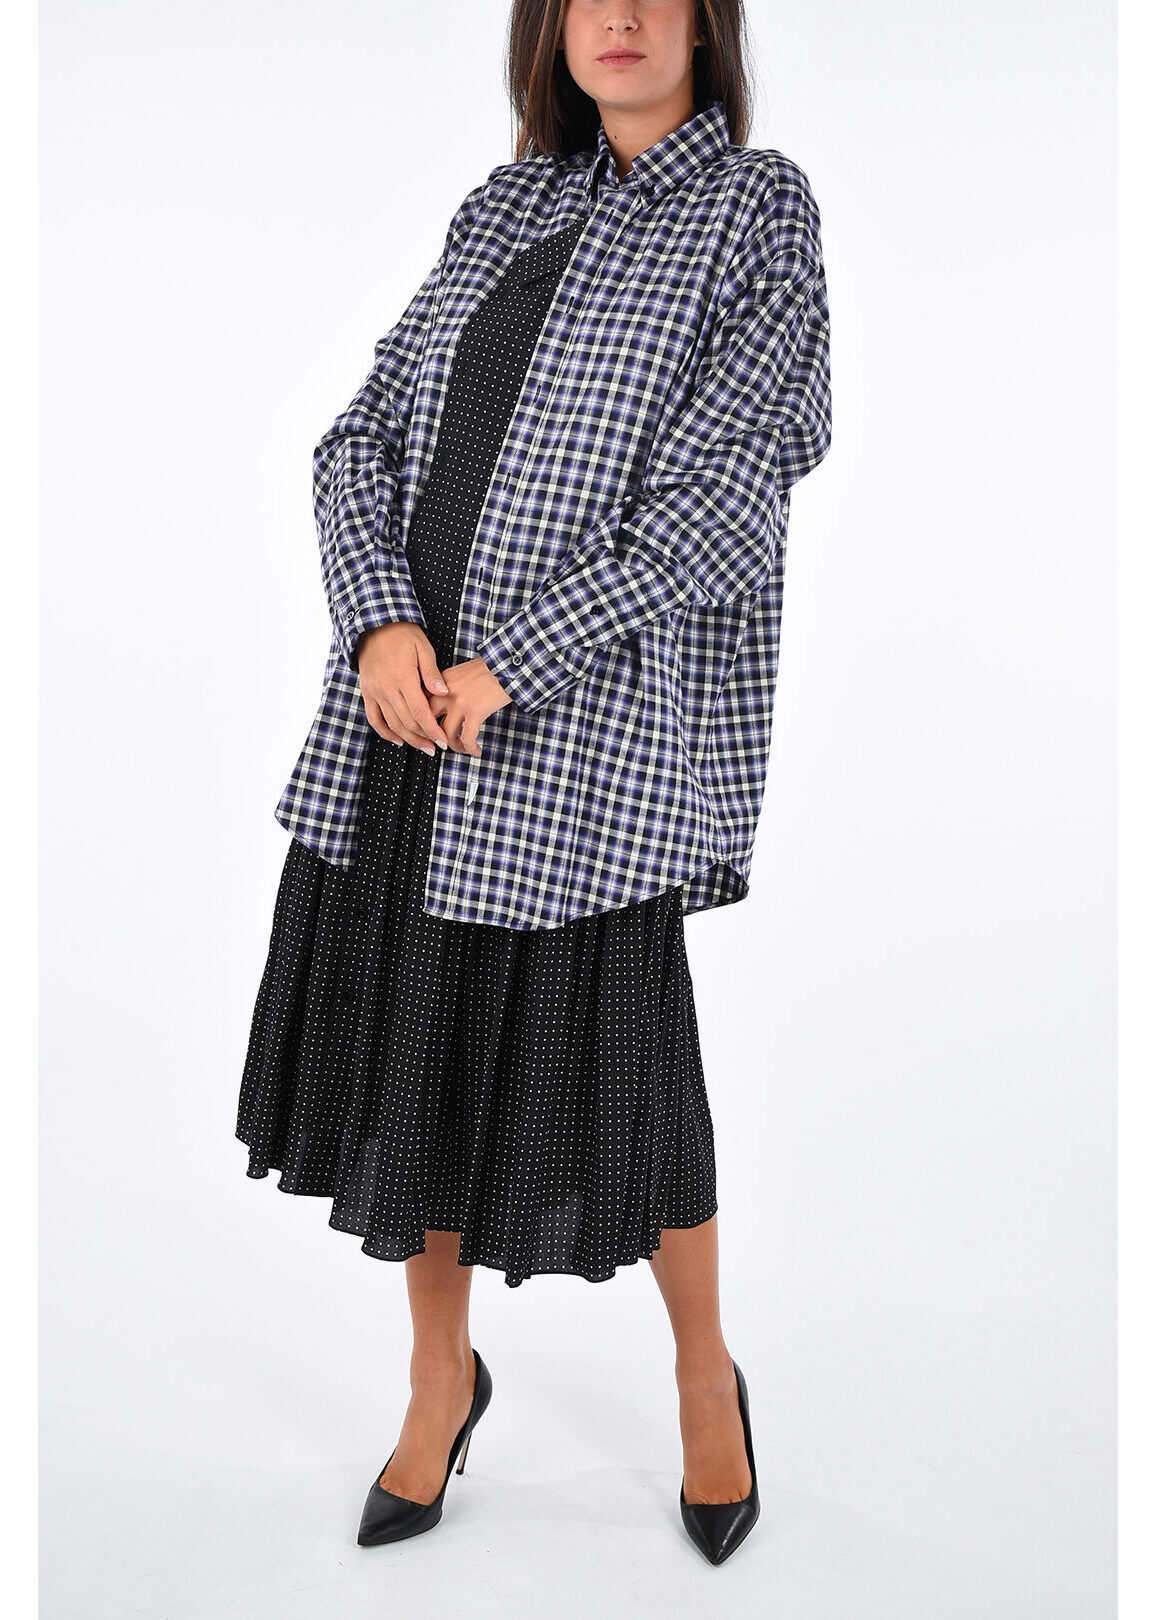 Checked Polka Dots Dress thumbnail